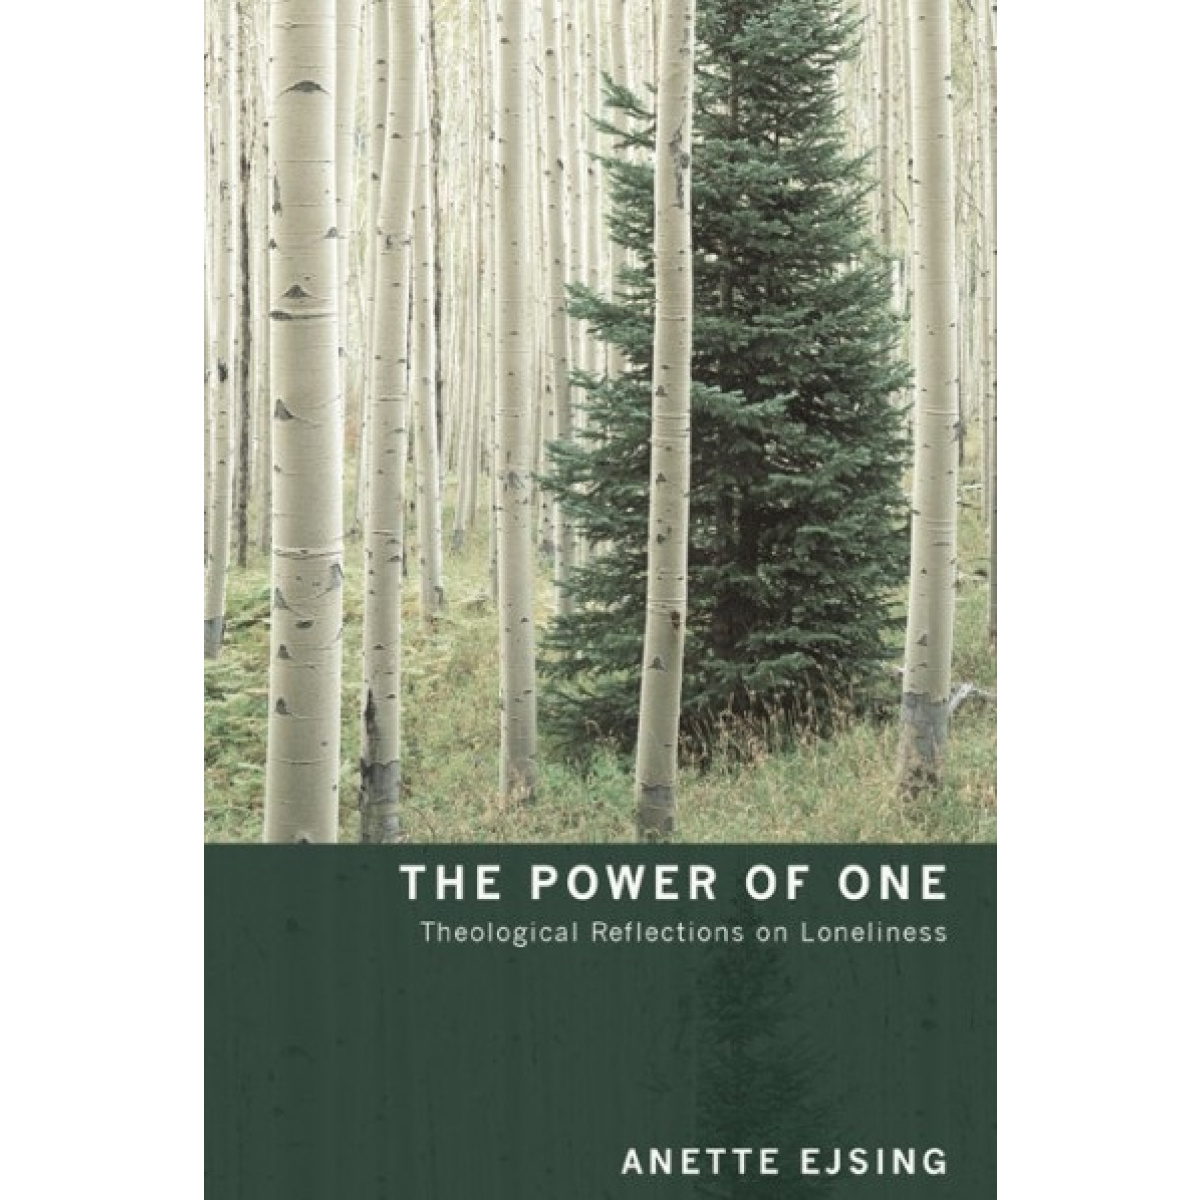 The power of one Anette Ejsing Novia